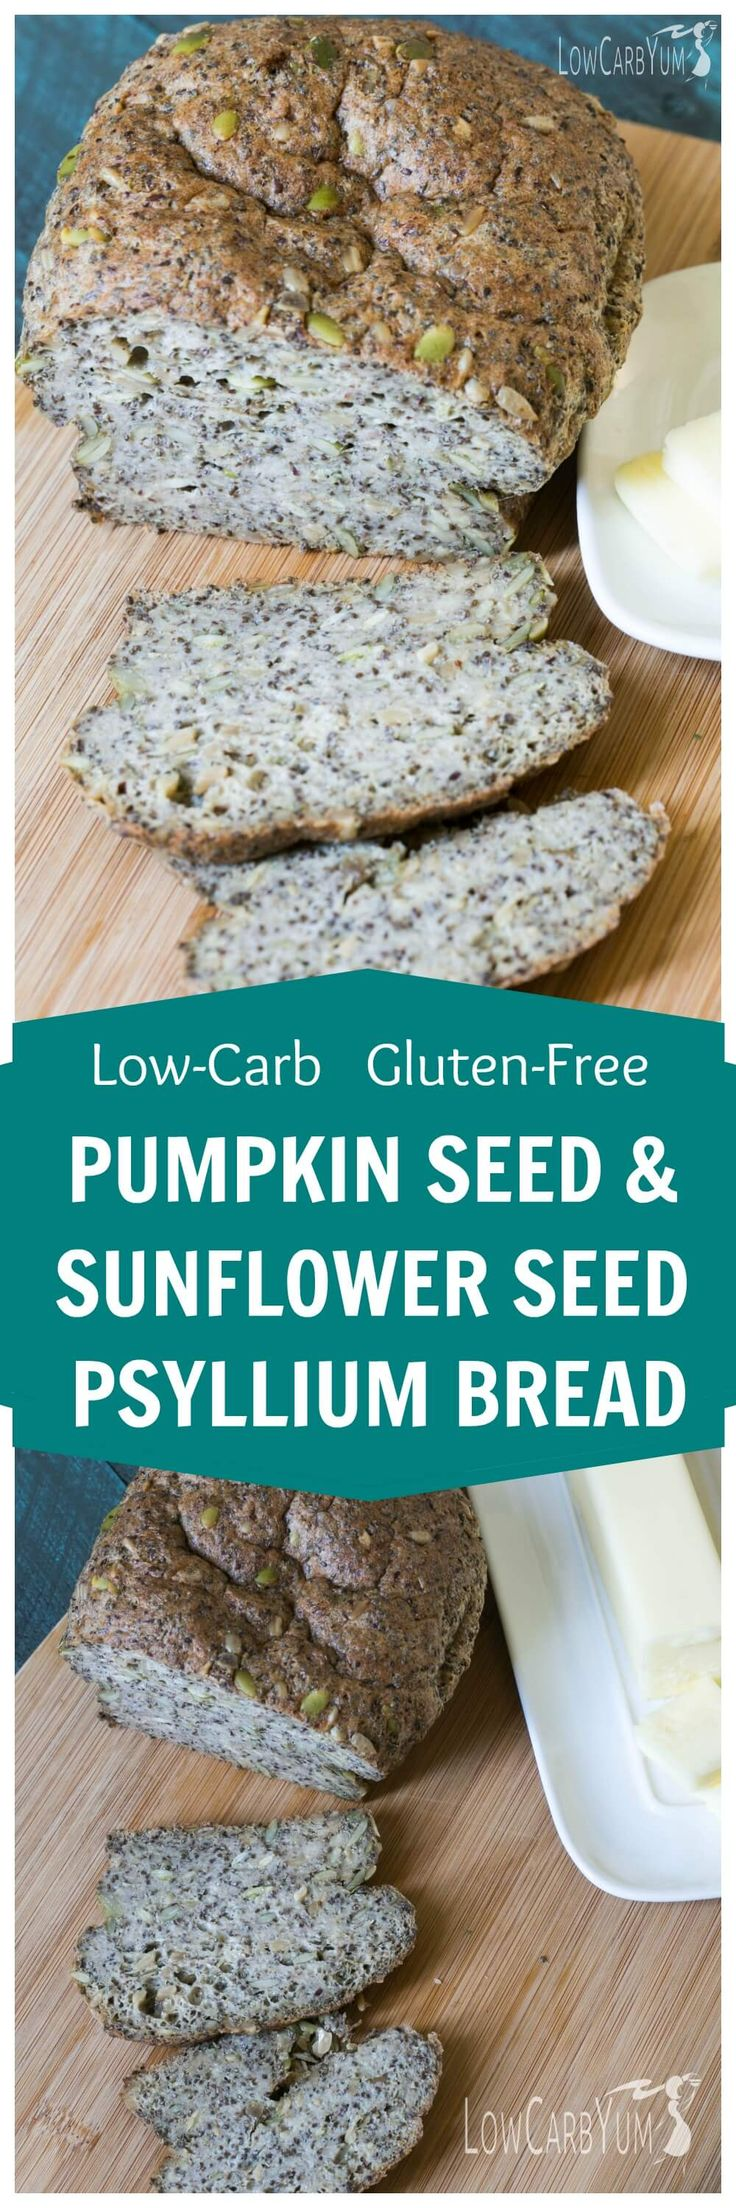 A low carb gluten free pumpkin sunflower seed psyllium bread. It's packed with hearty seeds and fiber. Enjoy it as a snack or along with a meal. | LowCarbYum.com